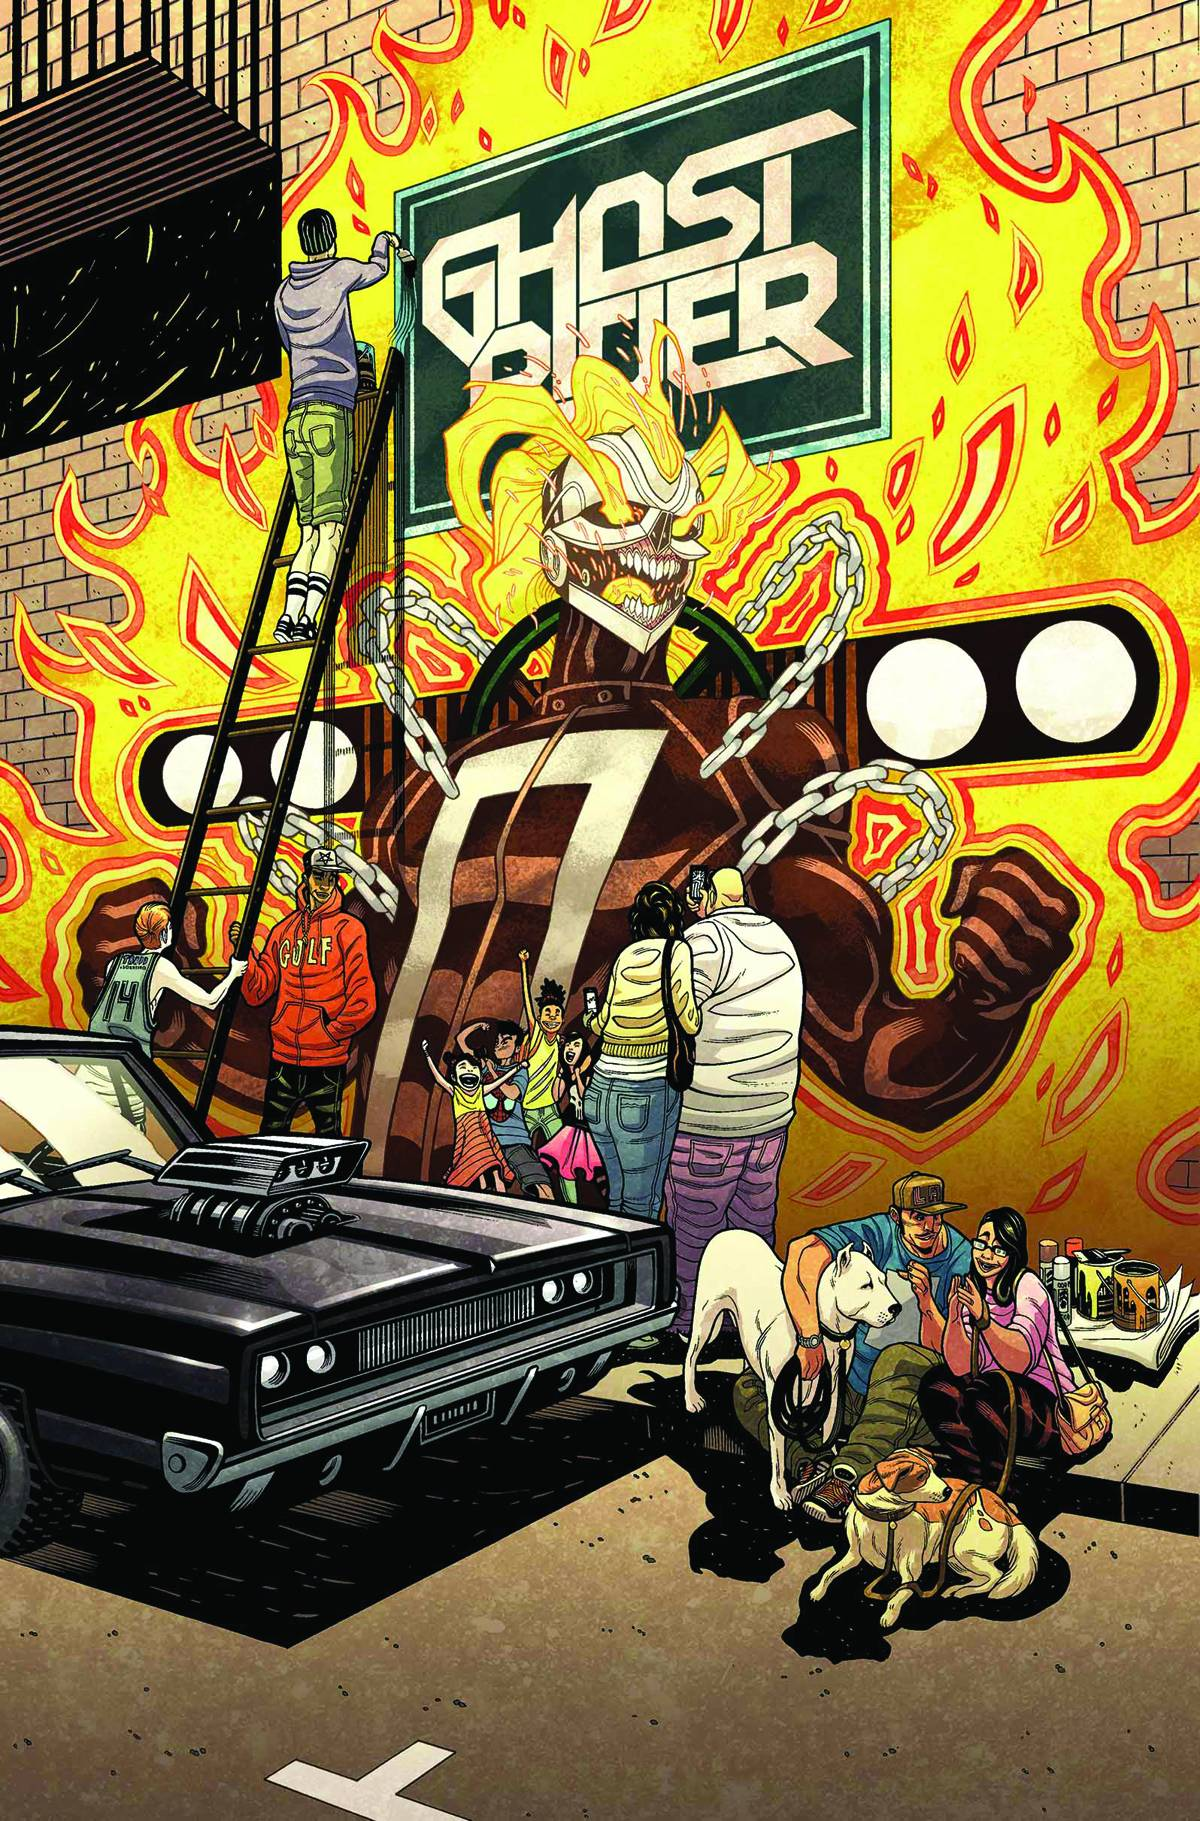 All New All Different Avengers Vol 1 2: All-New Ghost Rider #6 Review